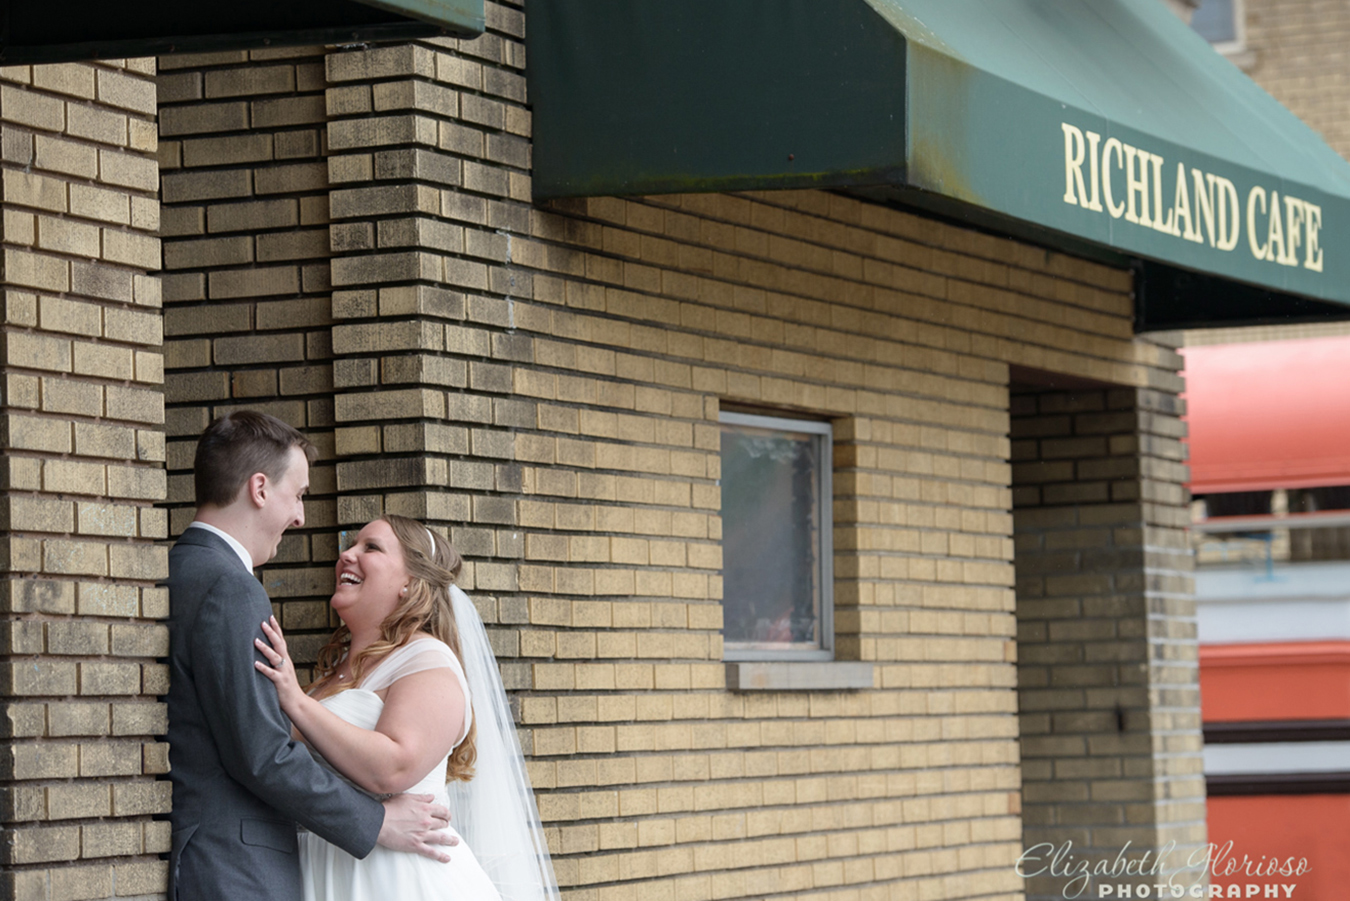 We made a stop for post ceremony photos at Richland Cafe in Lakewood where Amanda and Ryan shared their first kiss